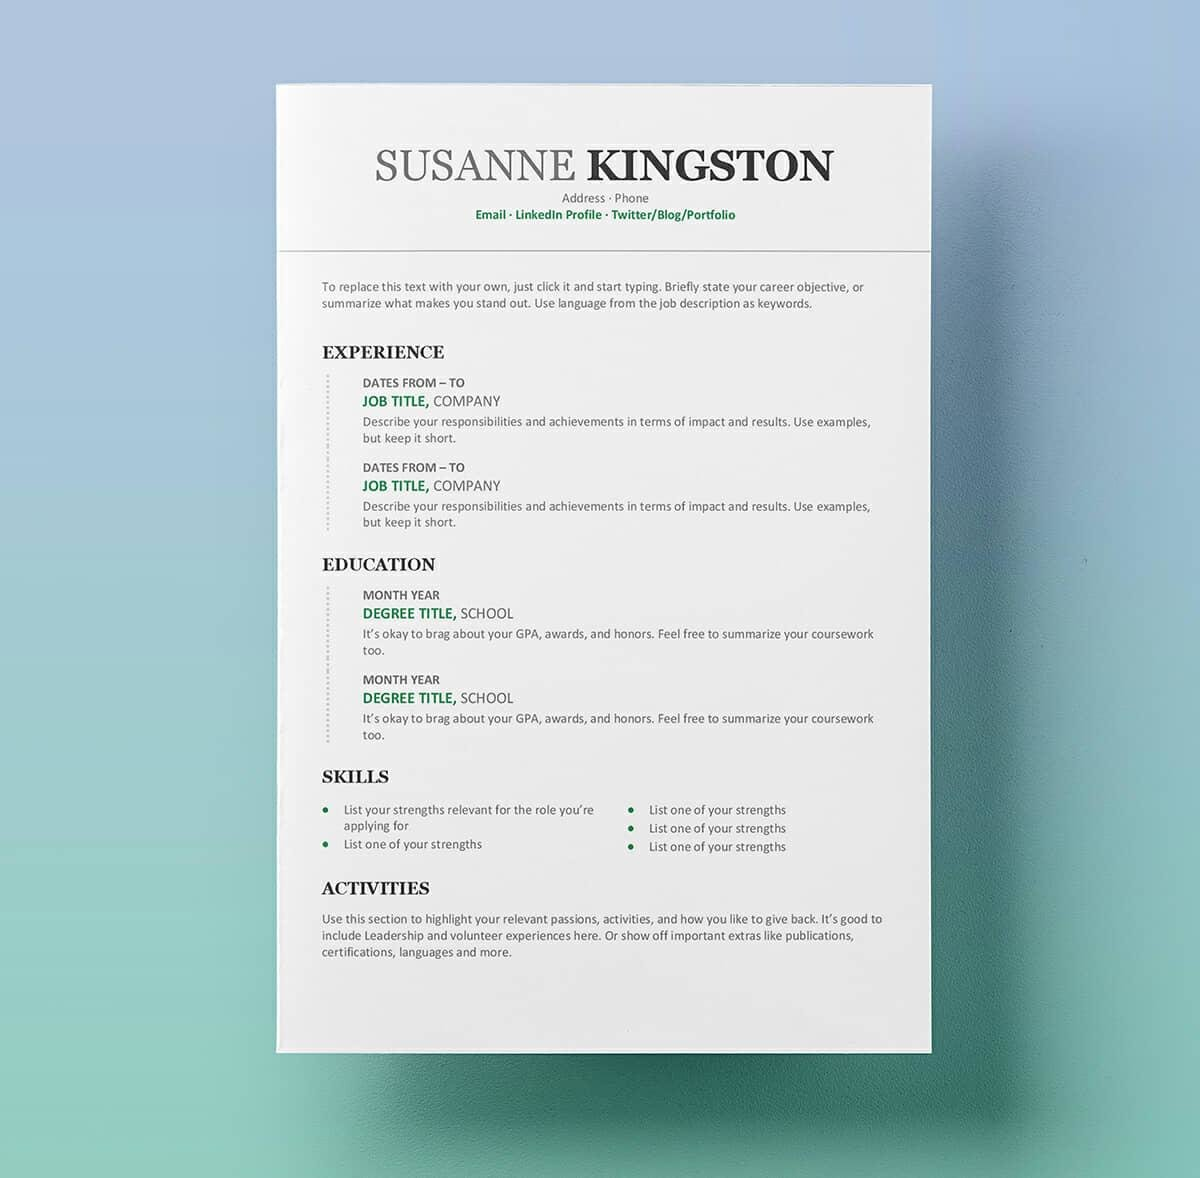 Lovely Microsoft Word Resume With Green Details